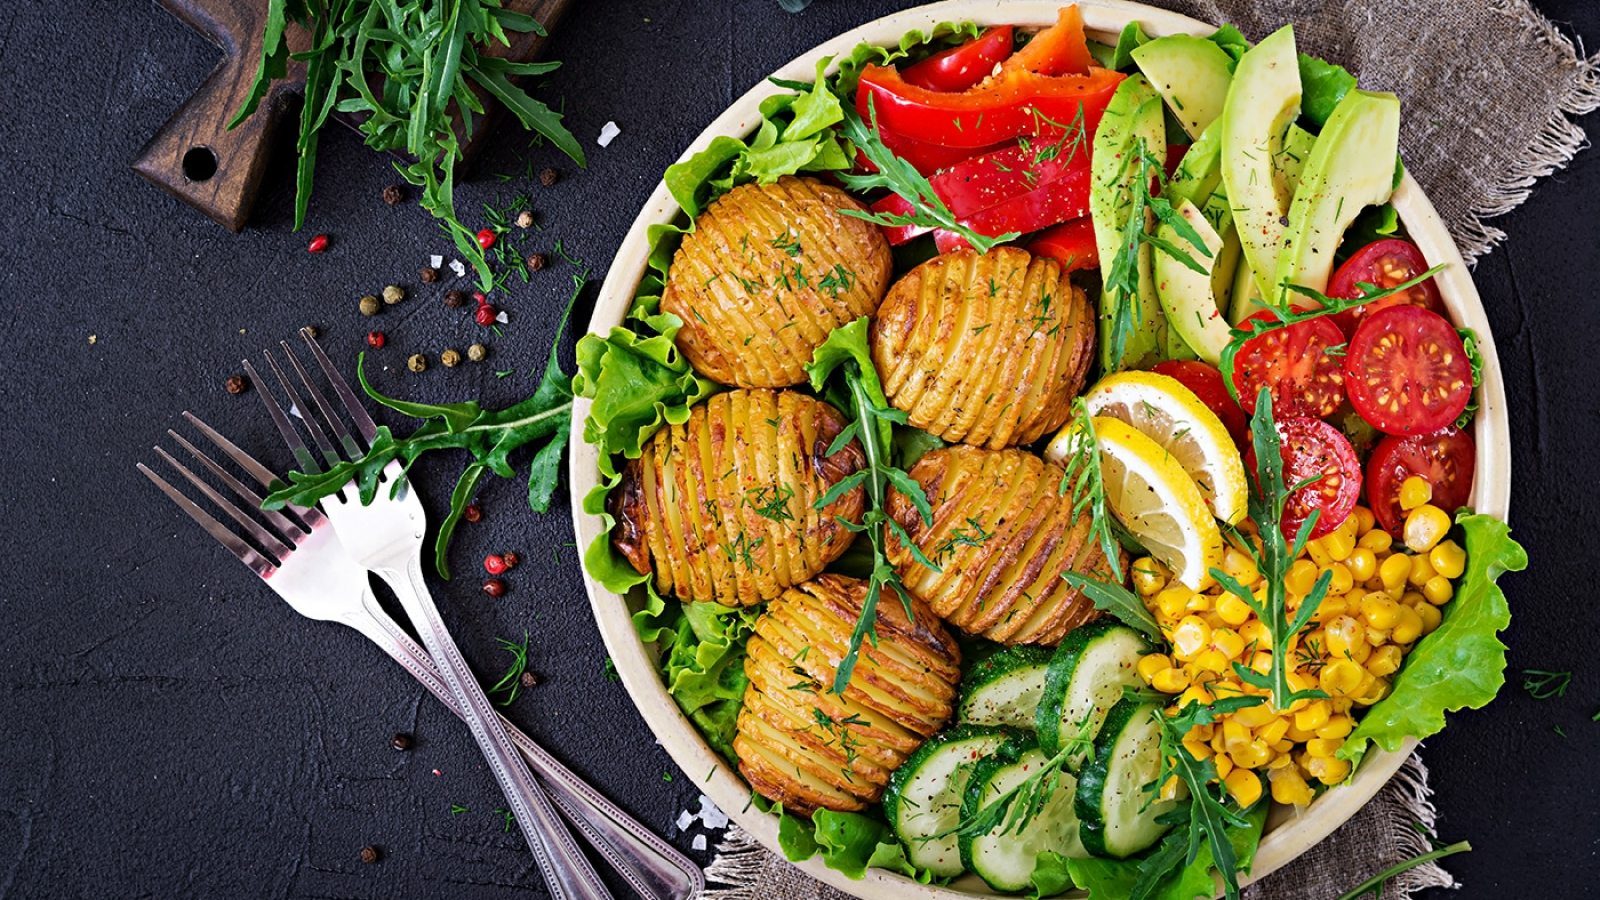 vegetarian-buddha-bowl-raw-vegetables-and-baked-KAYZM53